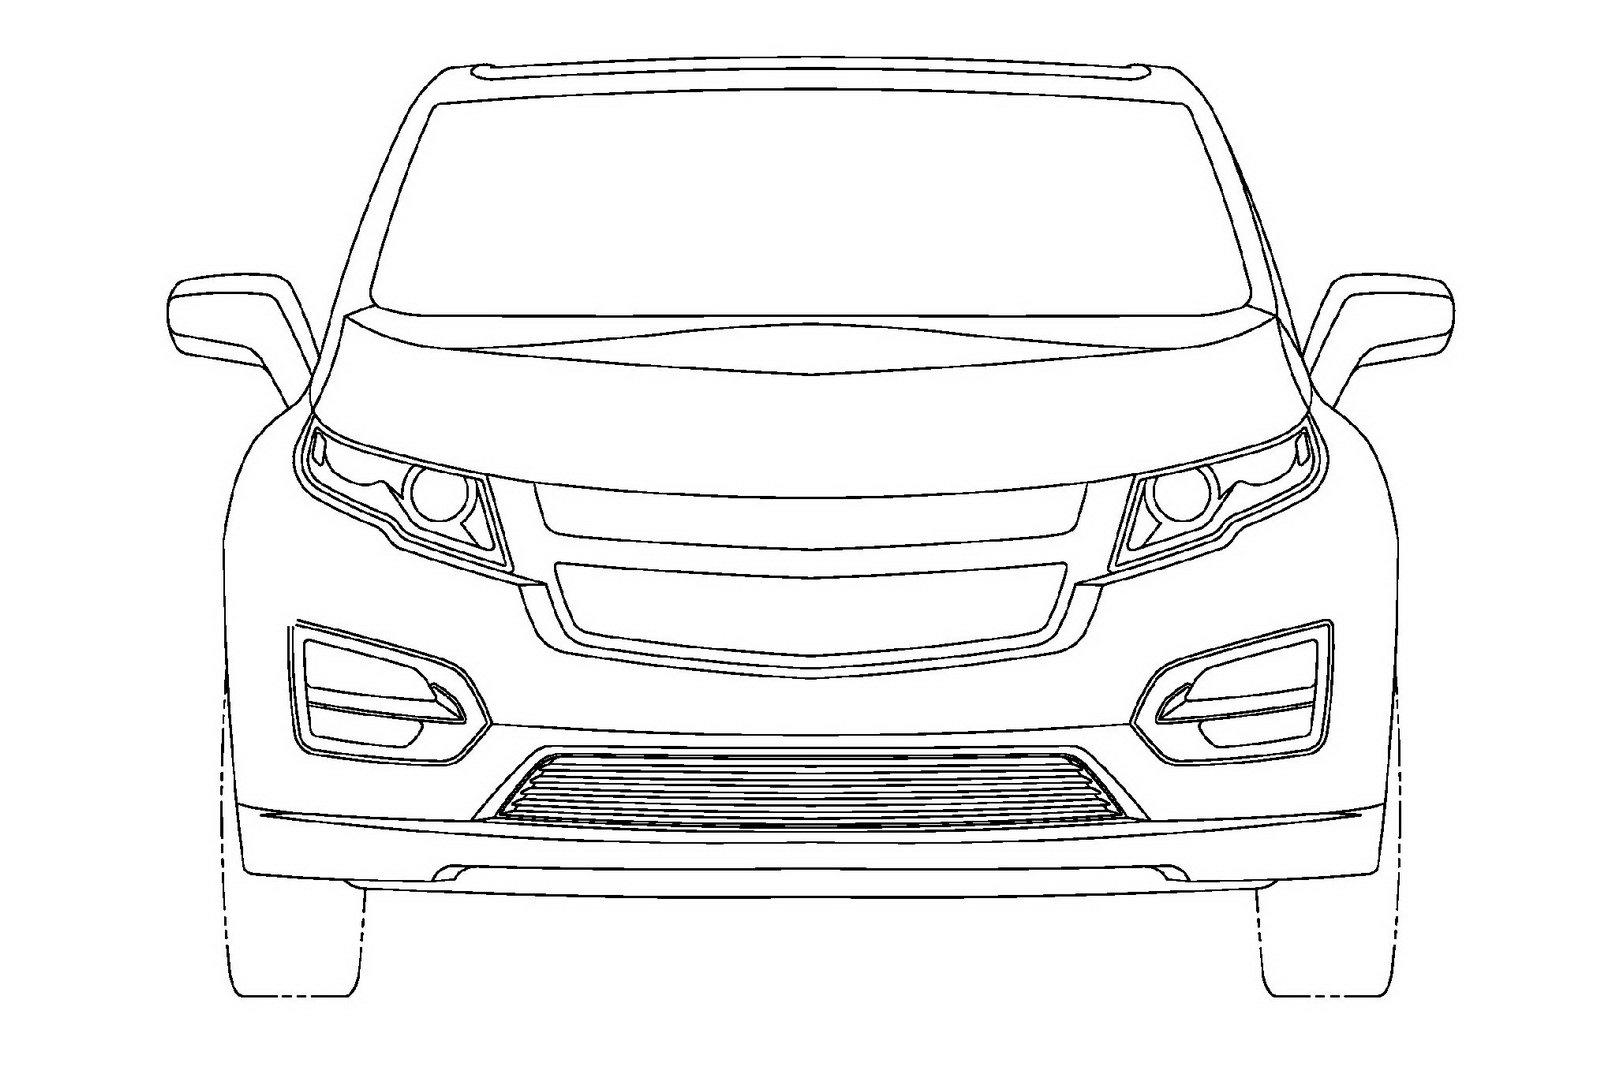 The Car Gm Readying Chevrolet Volt Esque Extended Range